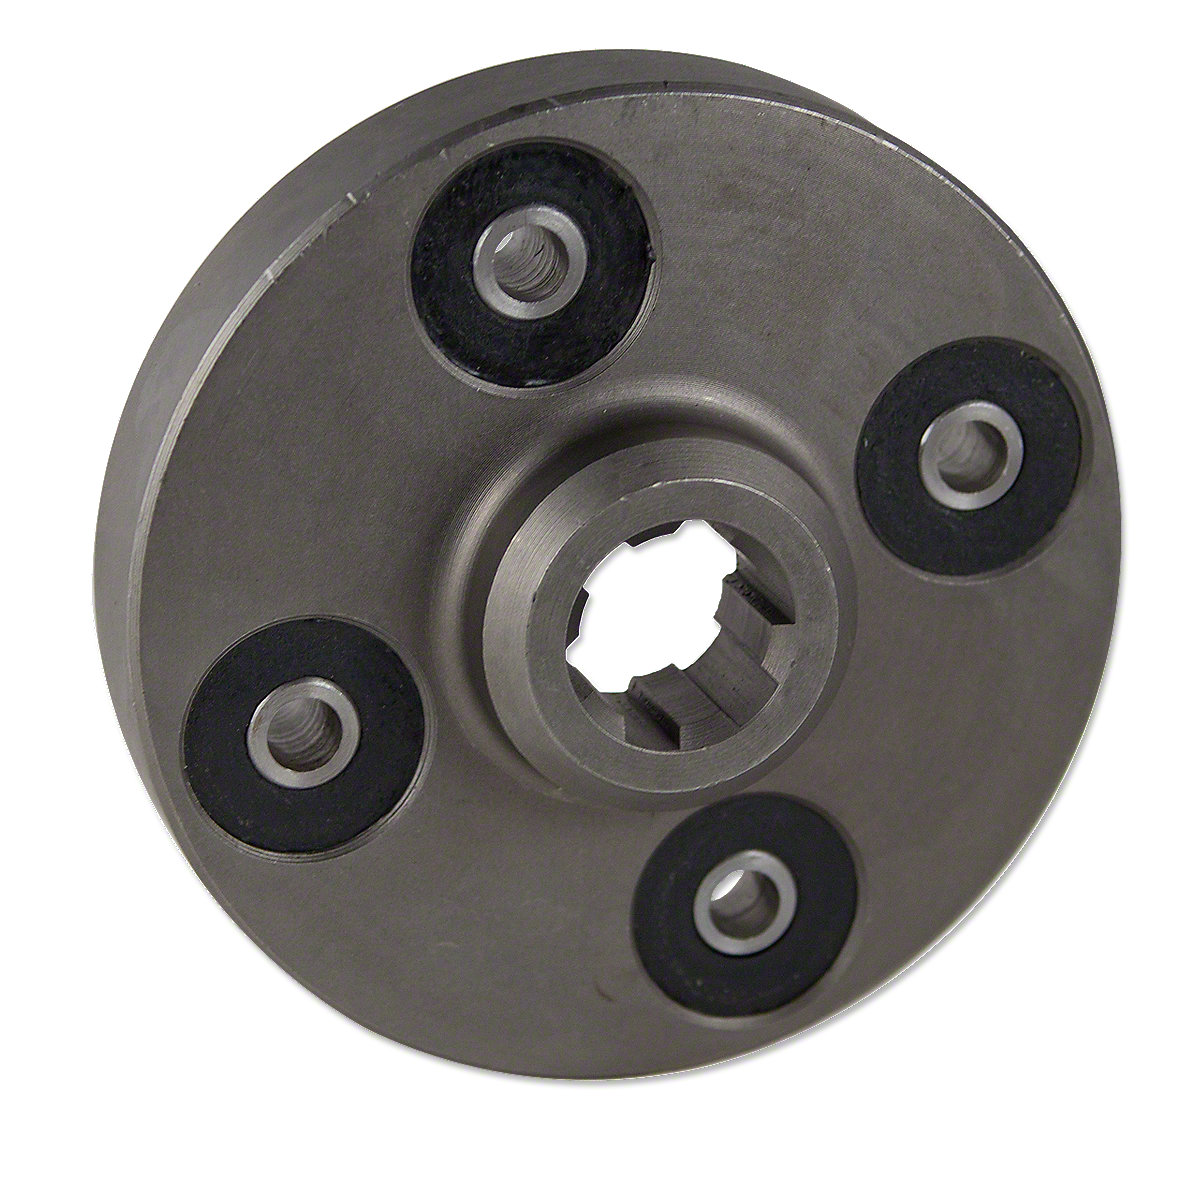 ABC1809 Front Hydraulic Pump Drive Hub Adapter